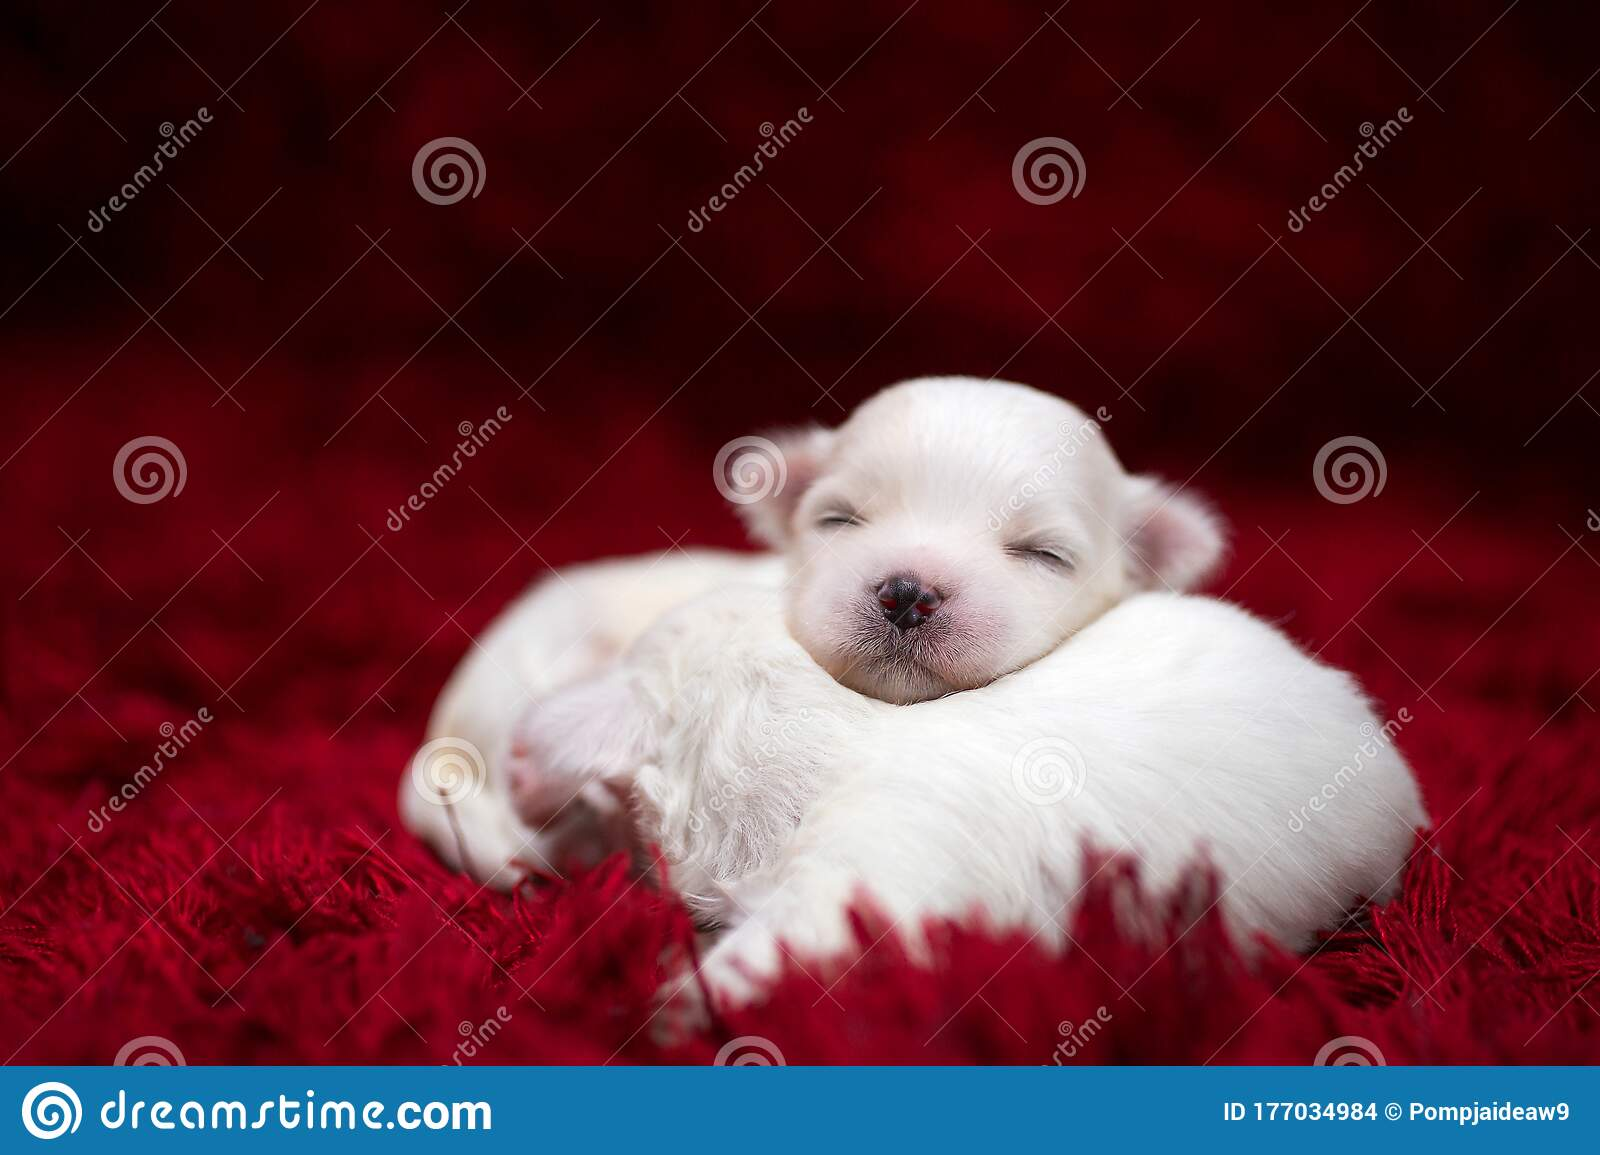 The Maltese Is A Breed Of Dog In The Toy Group Maltese Puppies Are Sleeping On A Bright Red Carpet Stock Photo Image Of Lying Canine 177034984